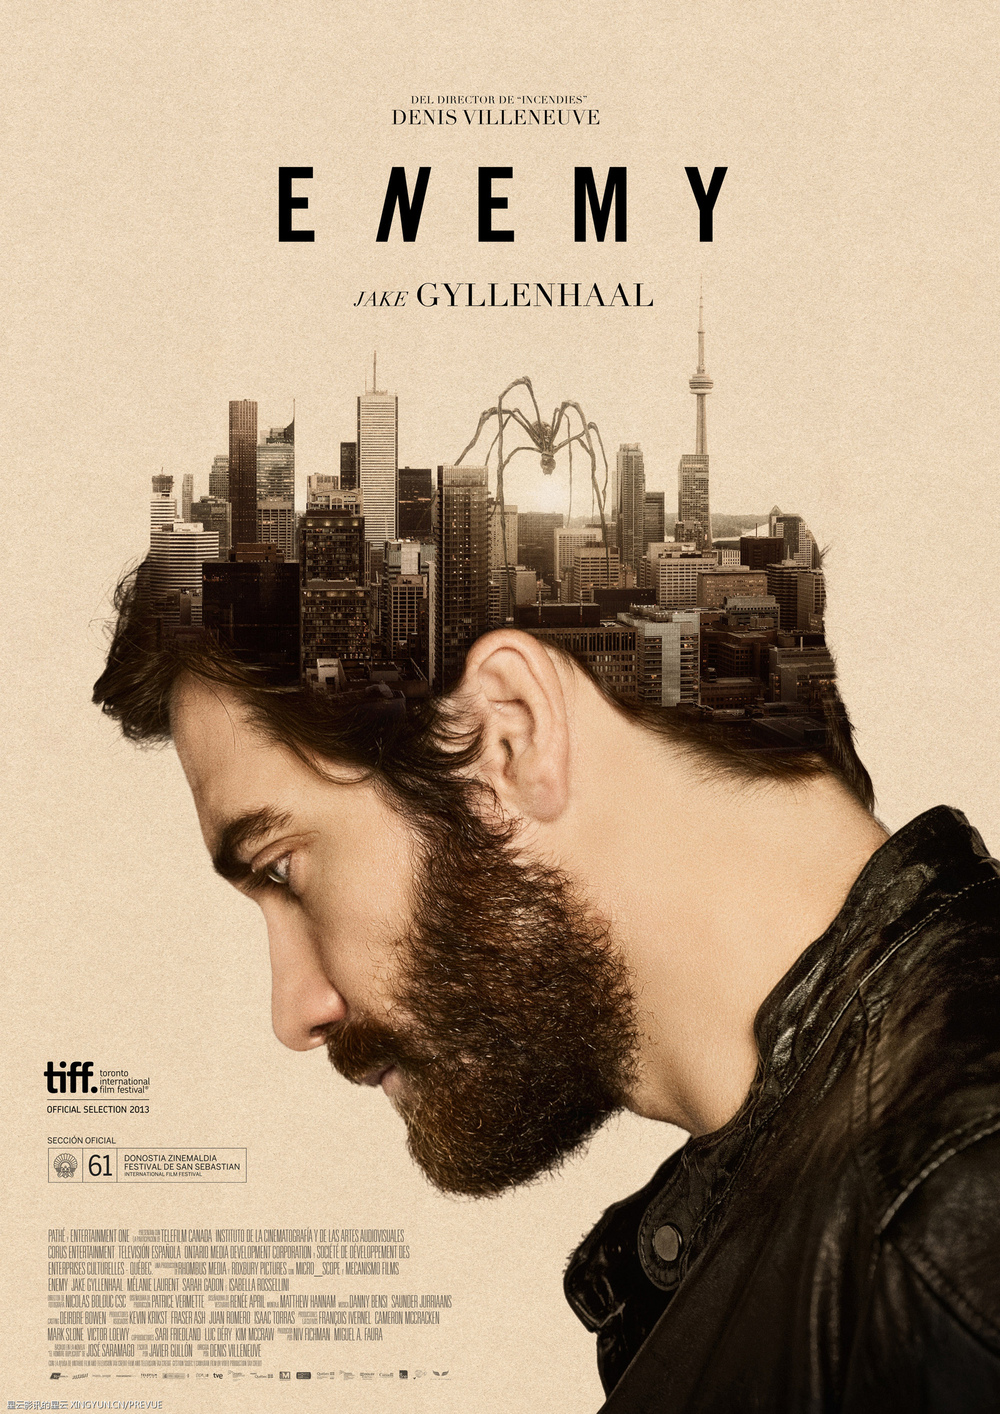 Best poster design 2014 - The 10 Best Movie Posters Of 2014